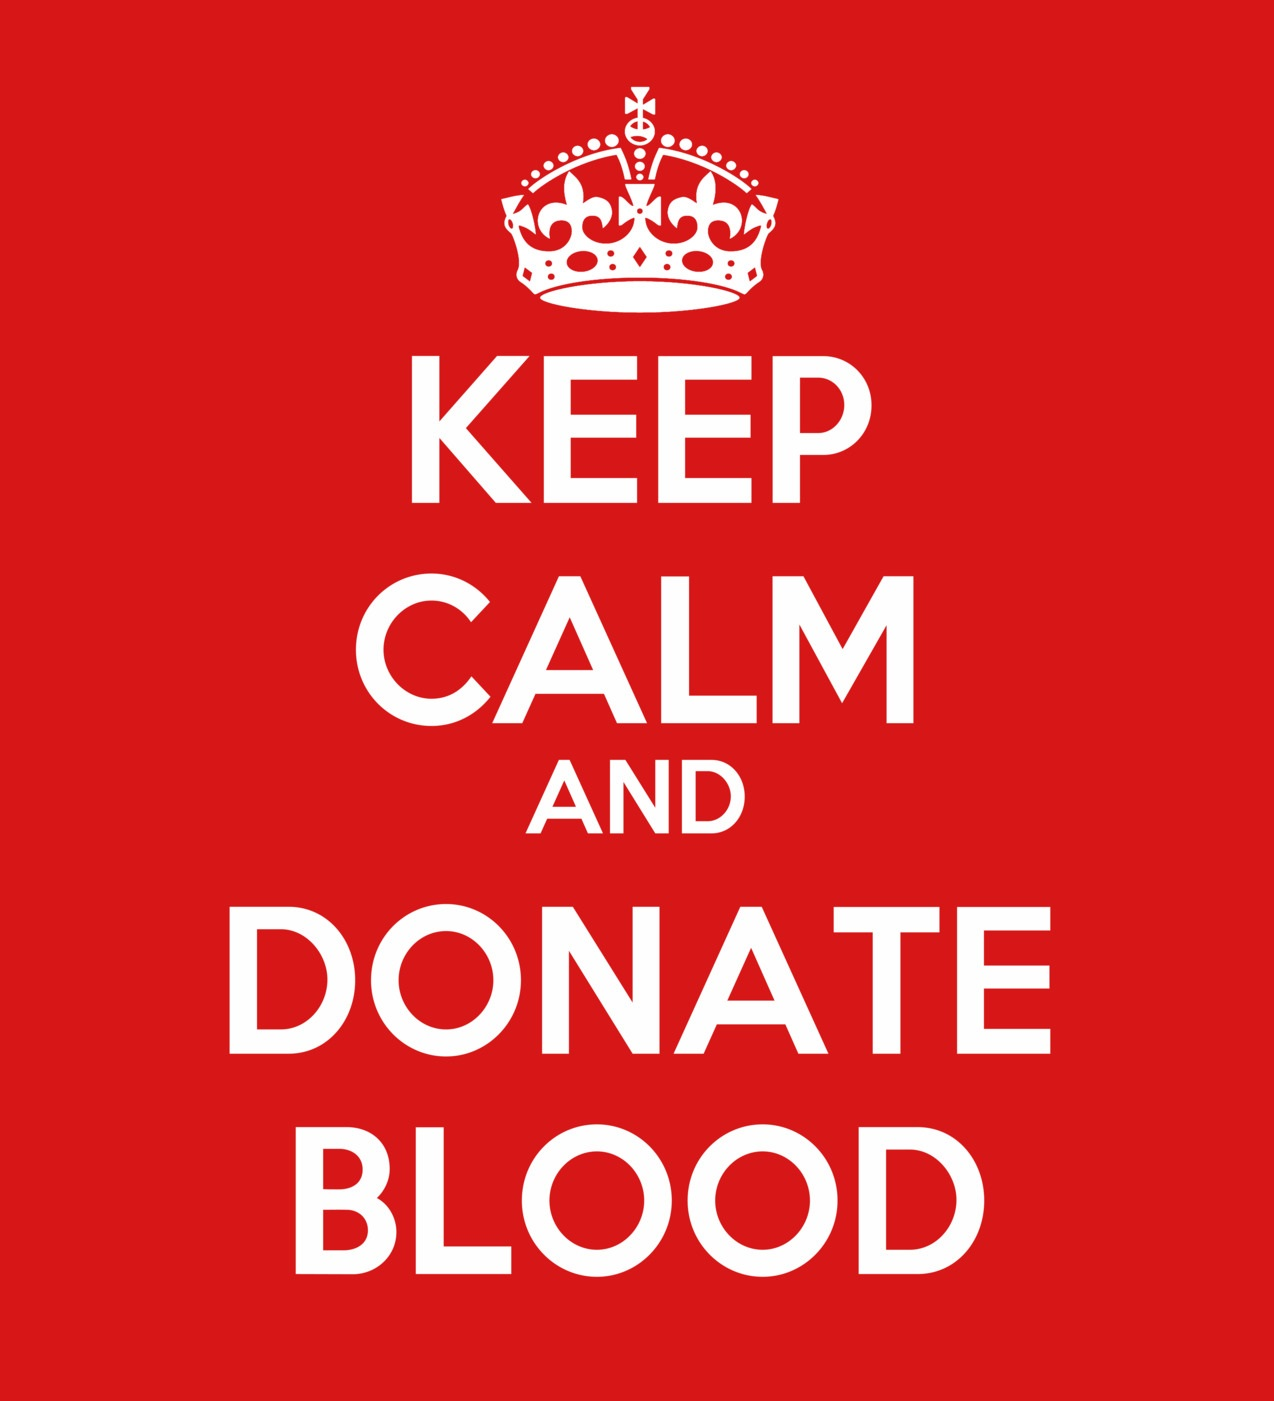 keep_calm_donate_blood.jpg